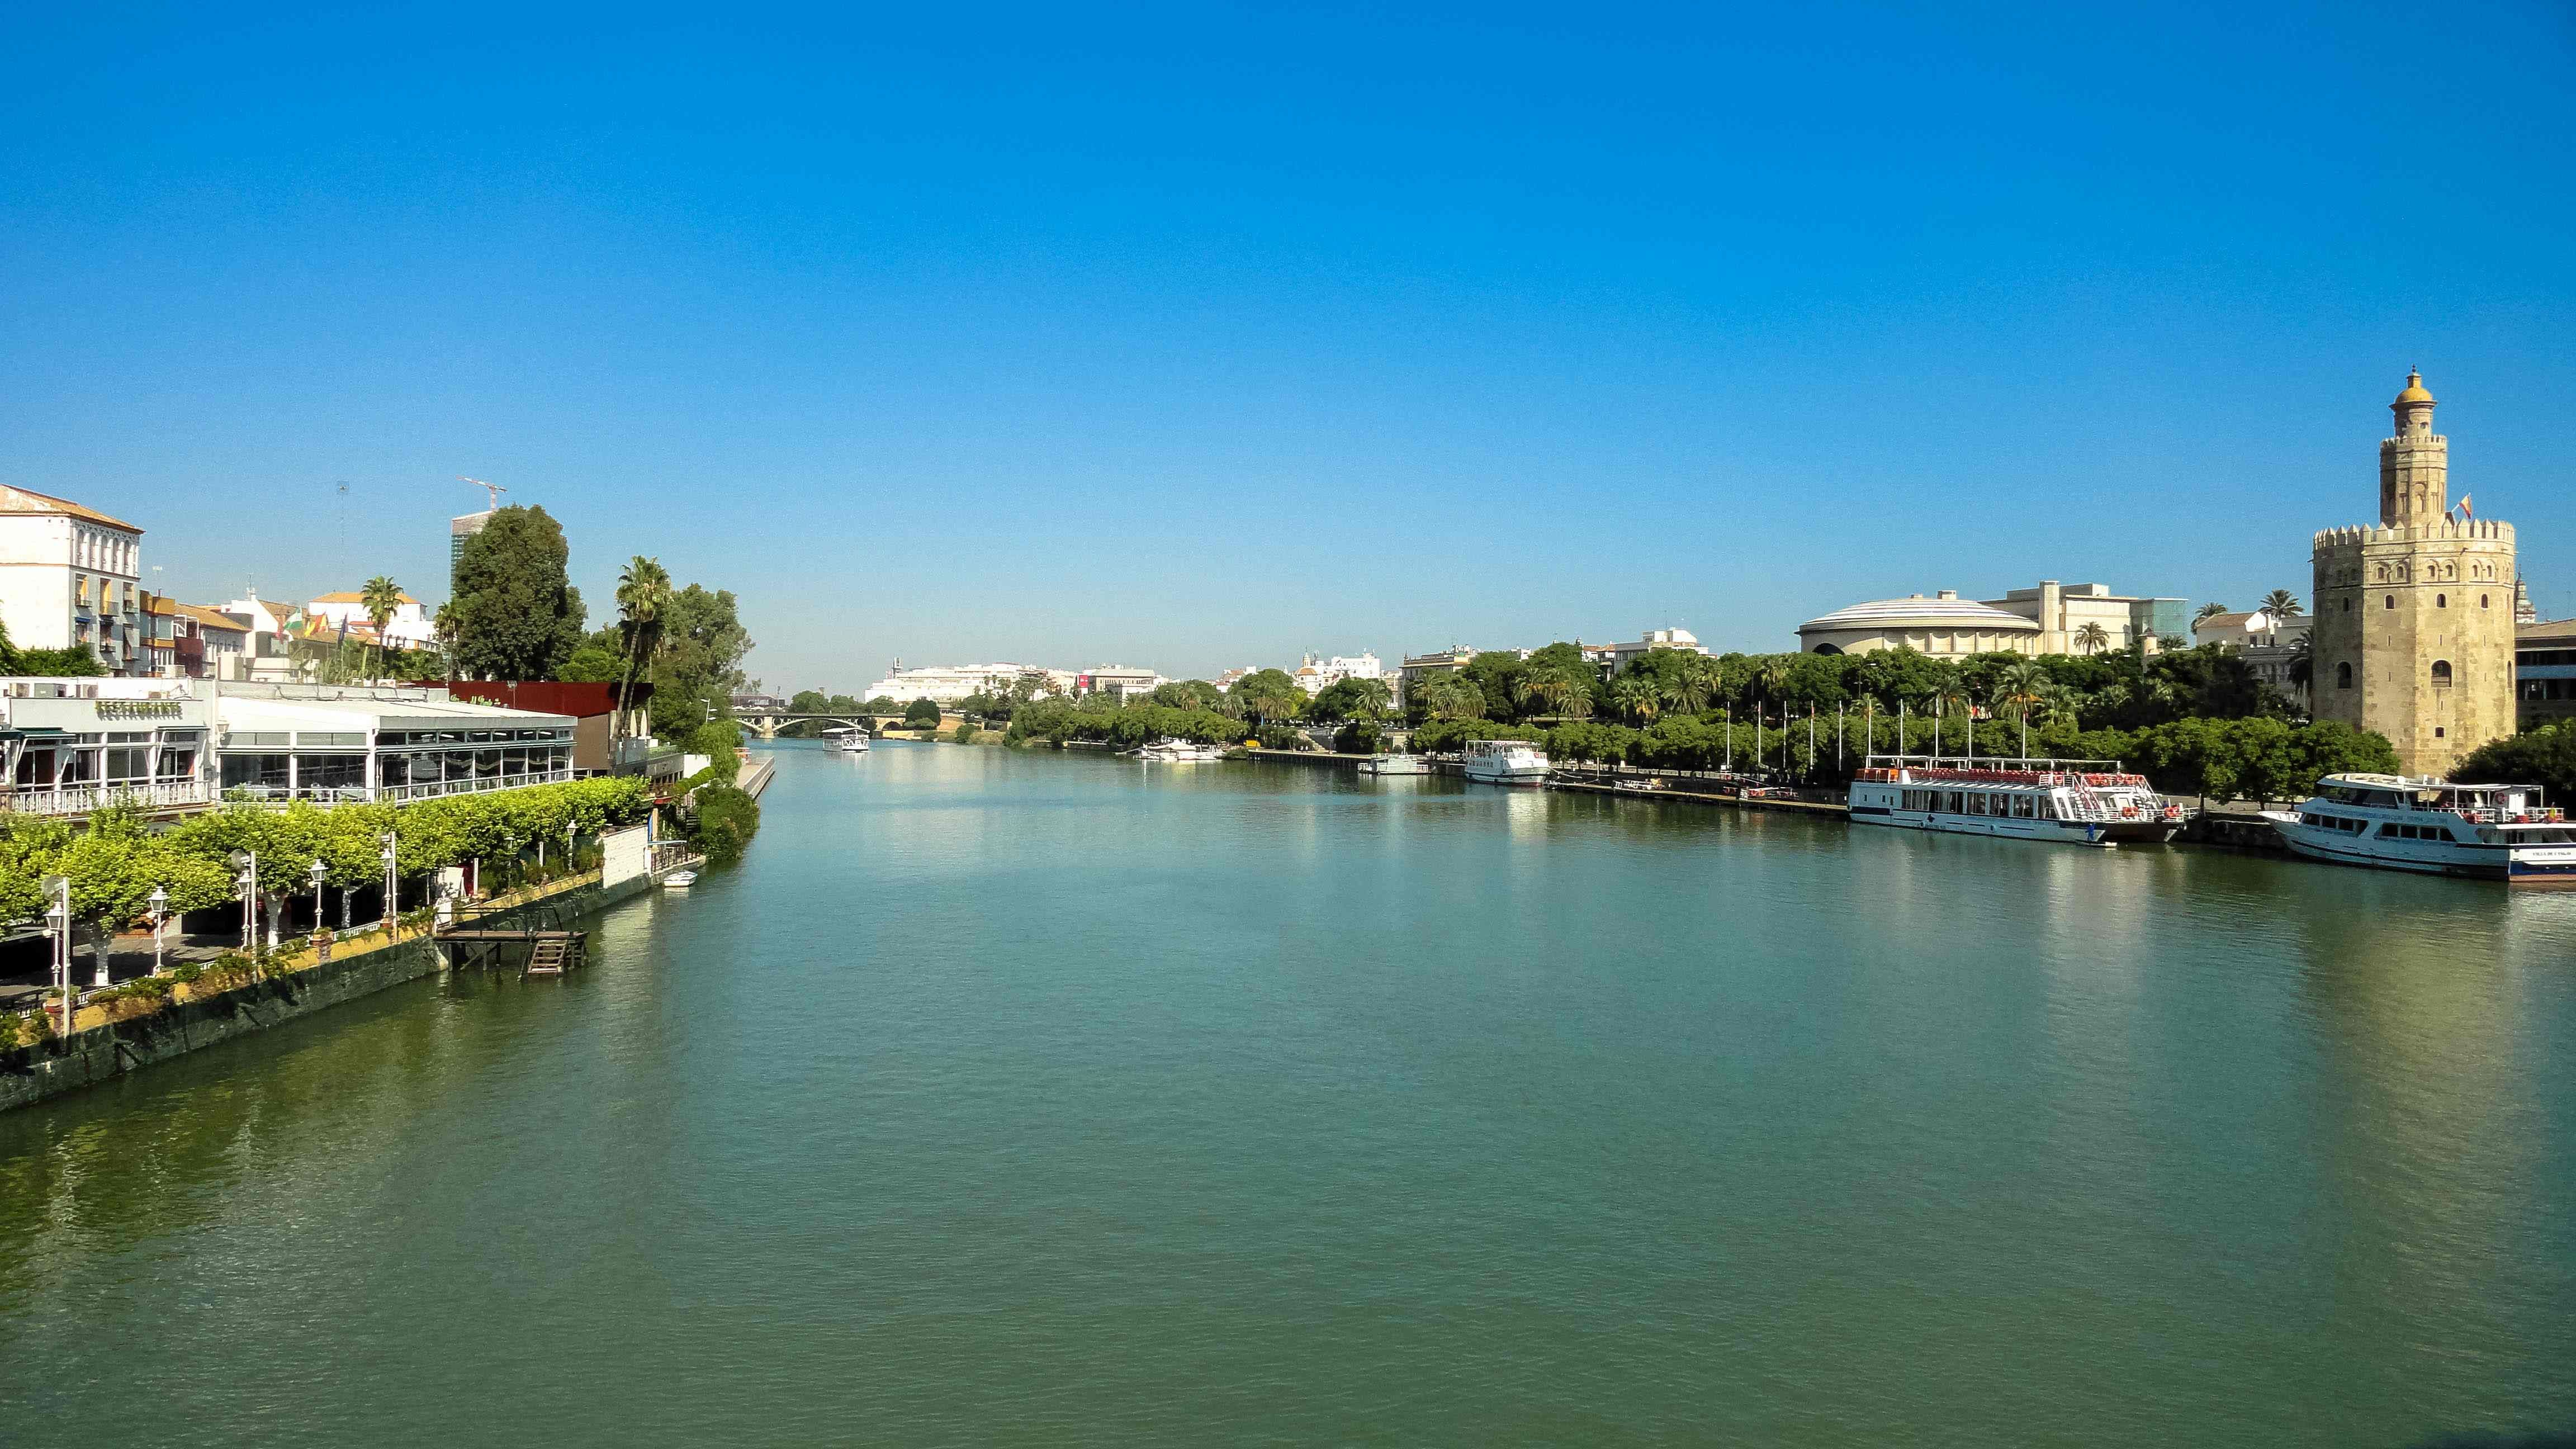 the Guadalquivir river. Seville, Spain.